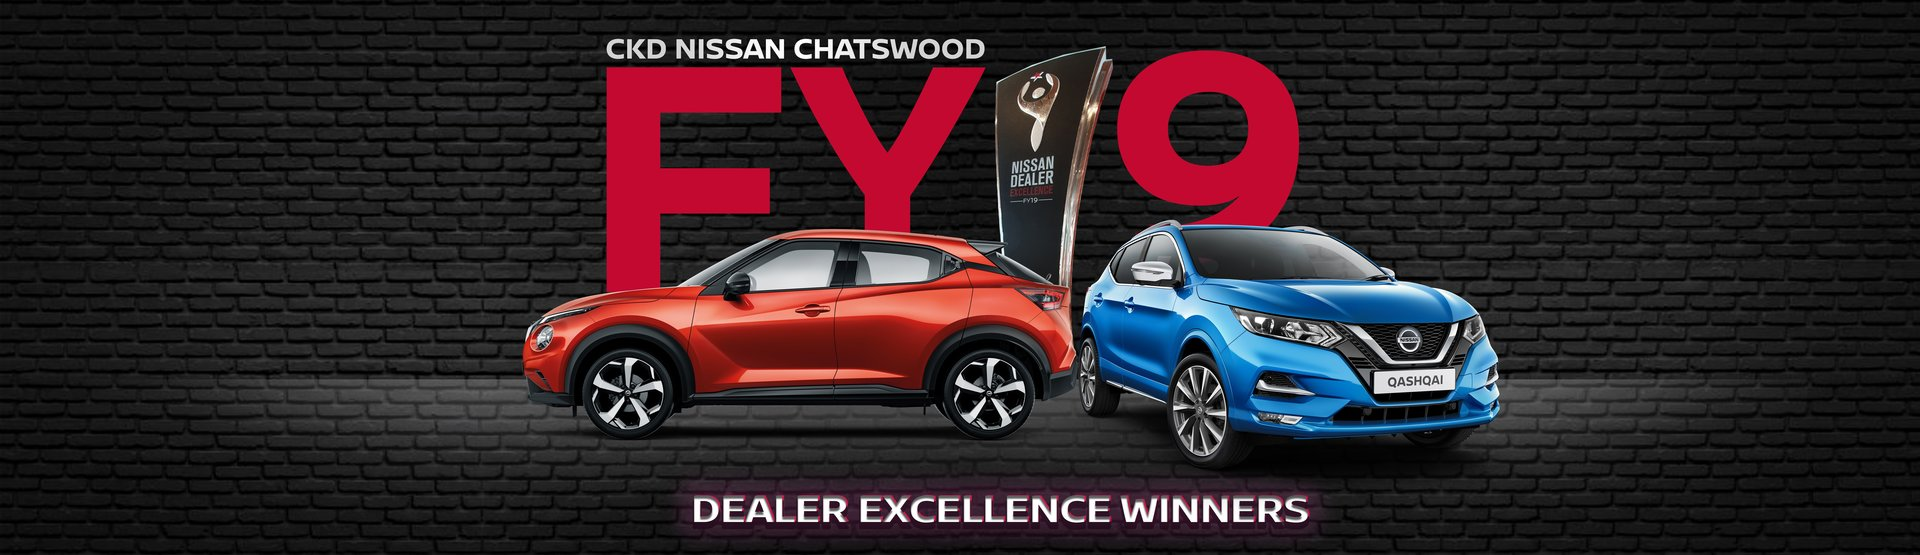 CKD Nissan Chatswood l Dealer Excellence